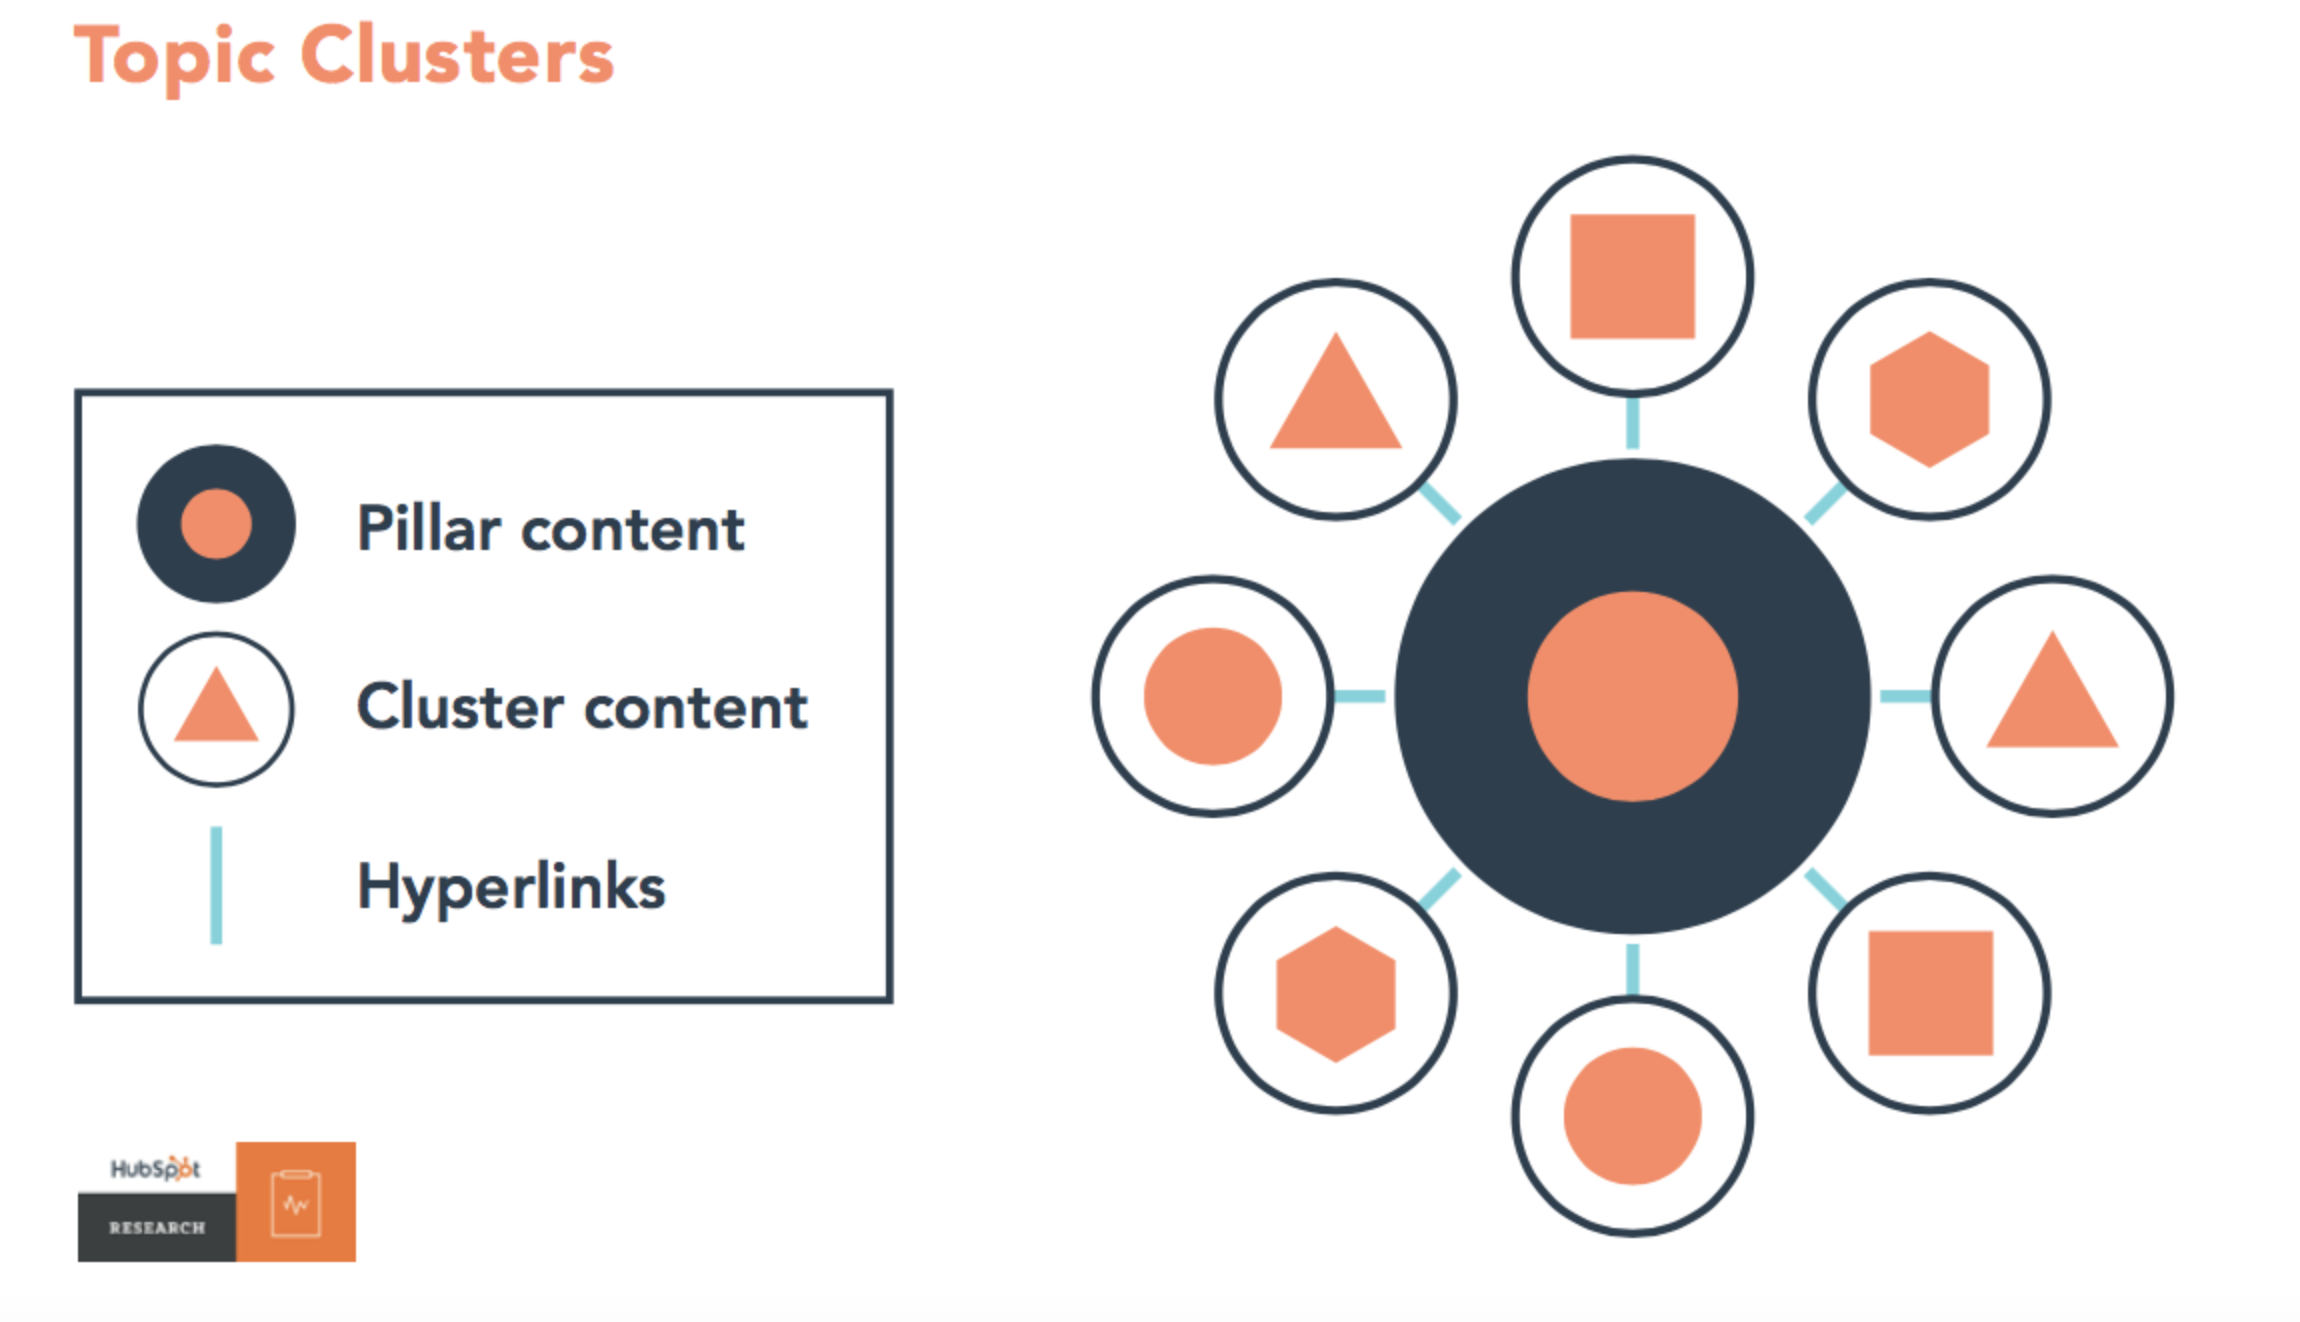 hubspot_topic_clusters